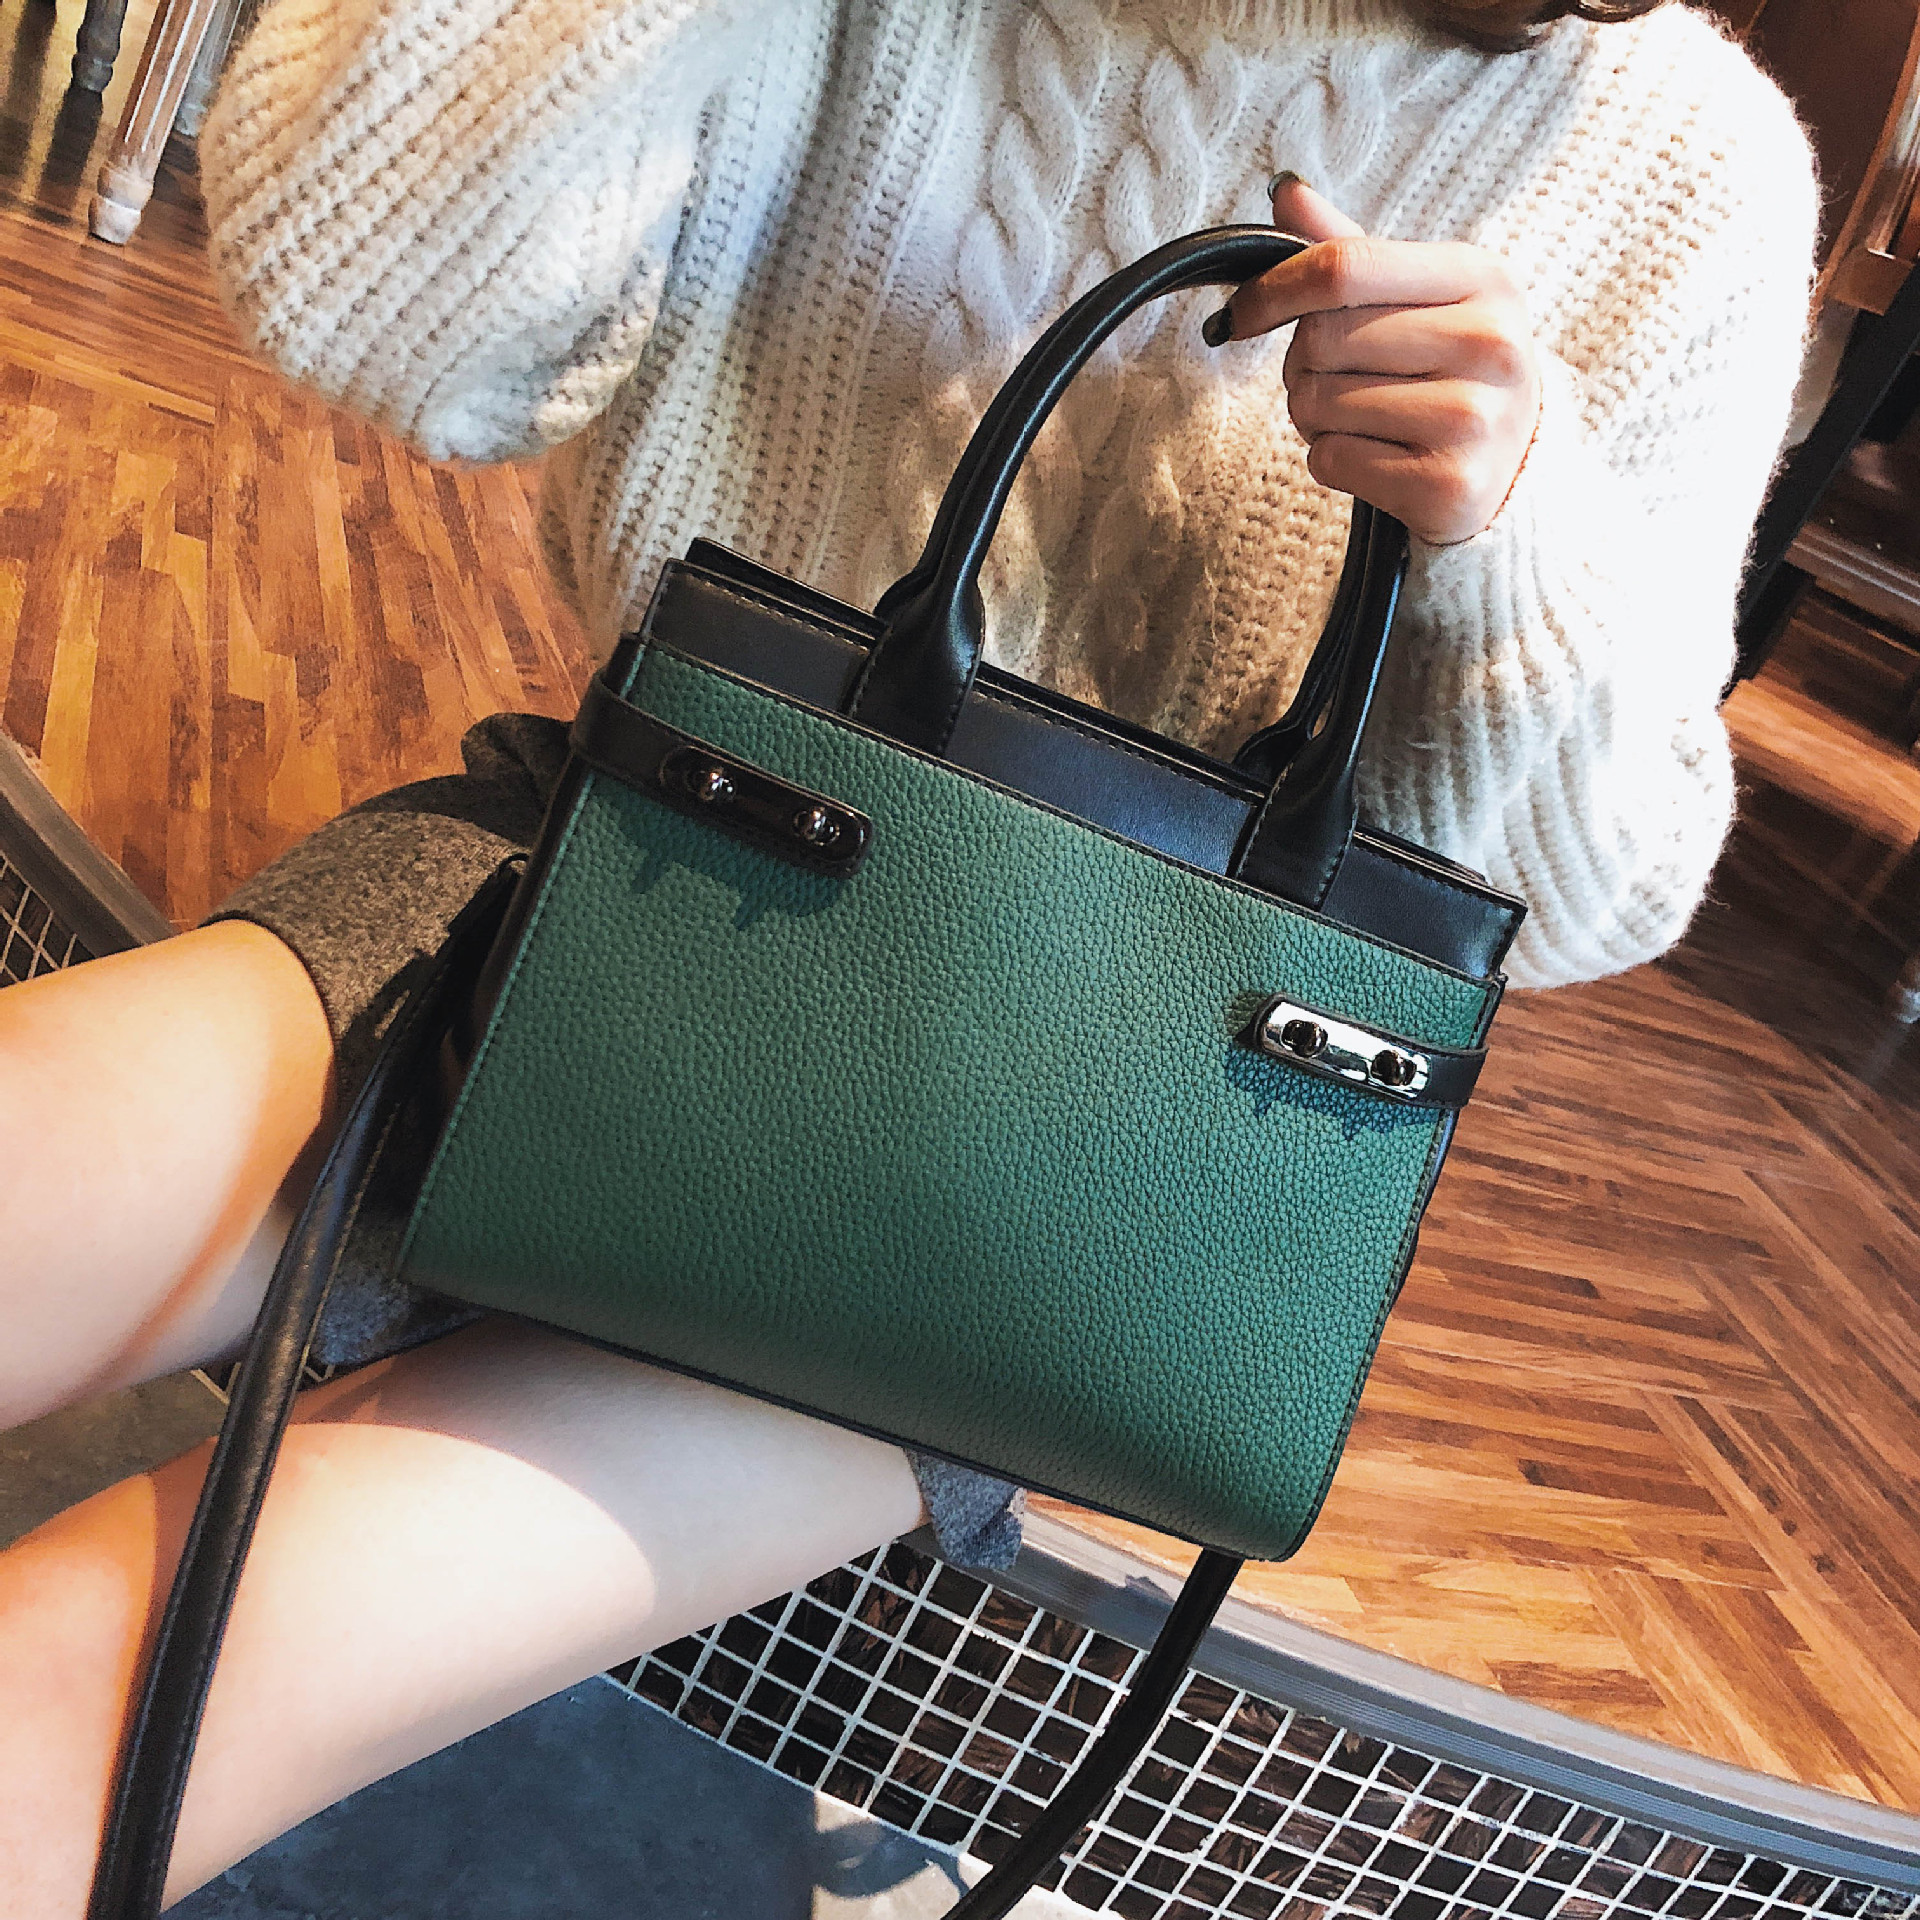 2018 New Women Bag Fashion Brand hand bag Big Solid Pu Leather Lady Shoulder Bag Female Casual Tote Crossbody bags 6v1284 jooz brand new luxury women handbags lady pu leather crossbody shoulder messenger bags female boston bowknot solid pattern bag